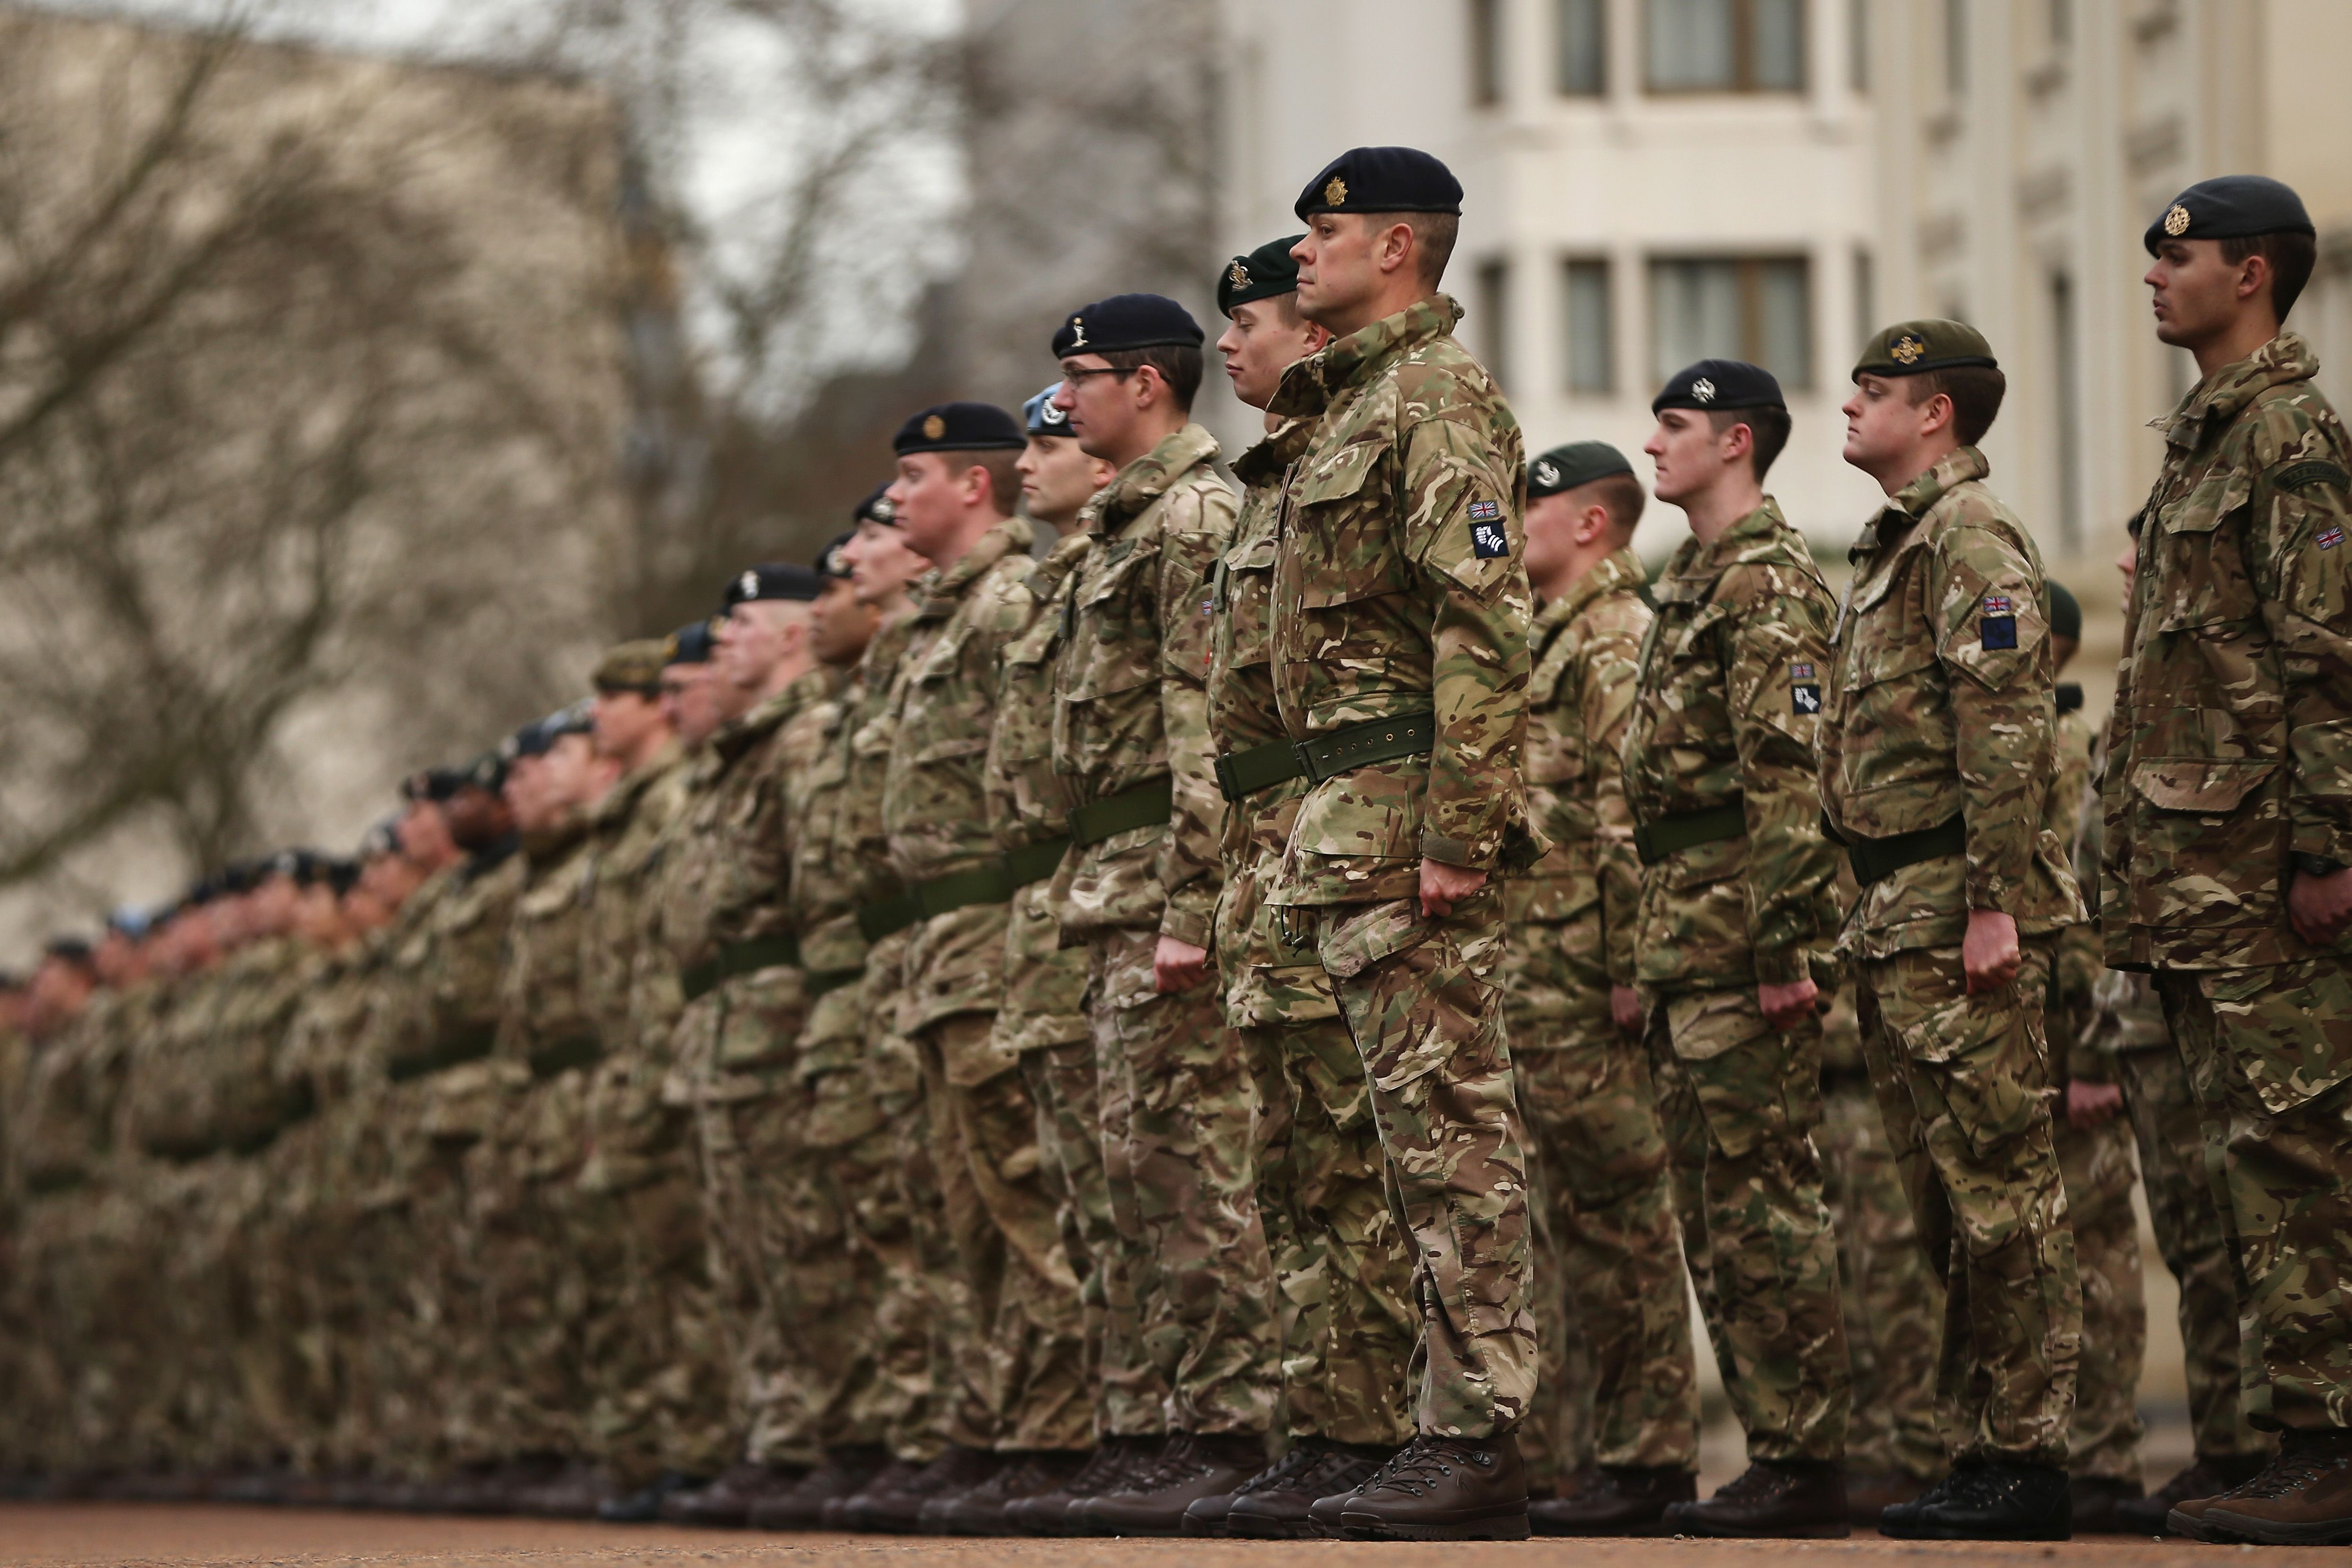 Is the National Call to Service a Two-Year Enlistment?